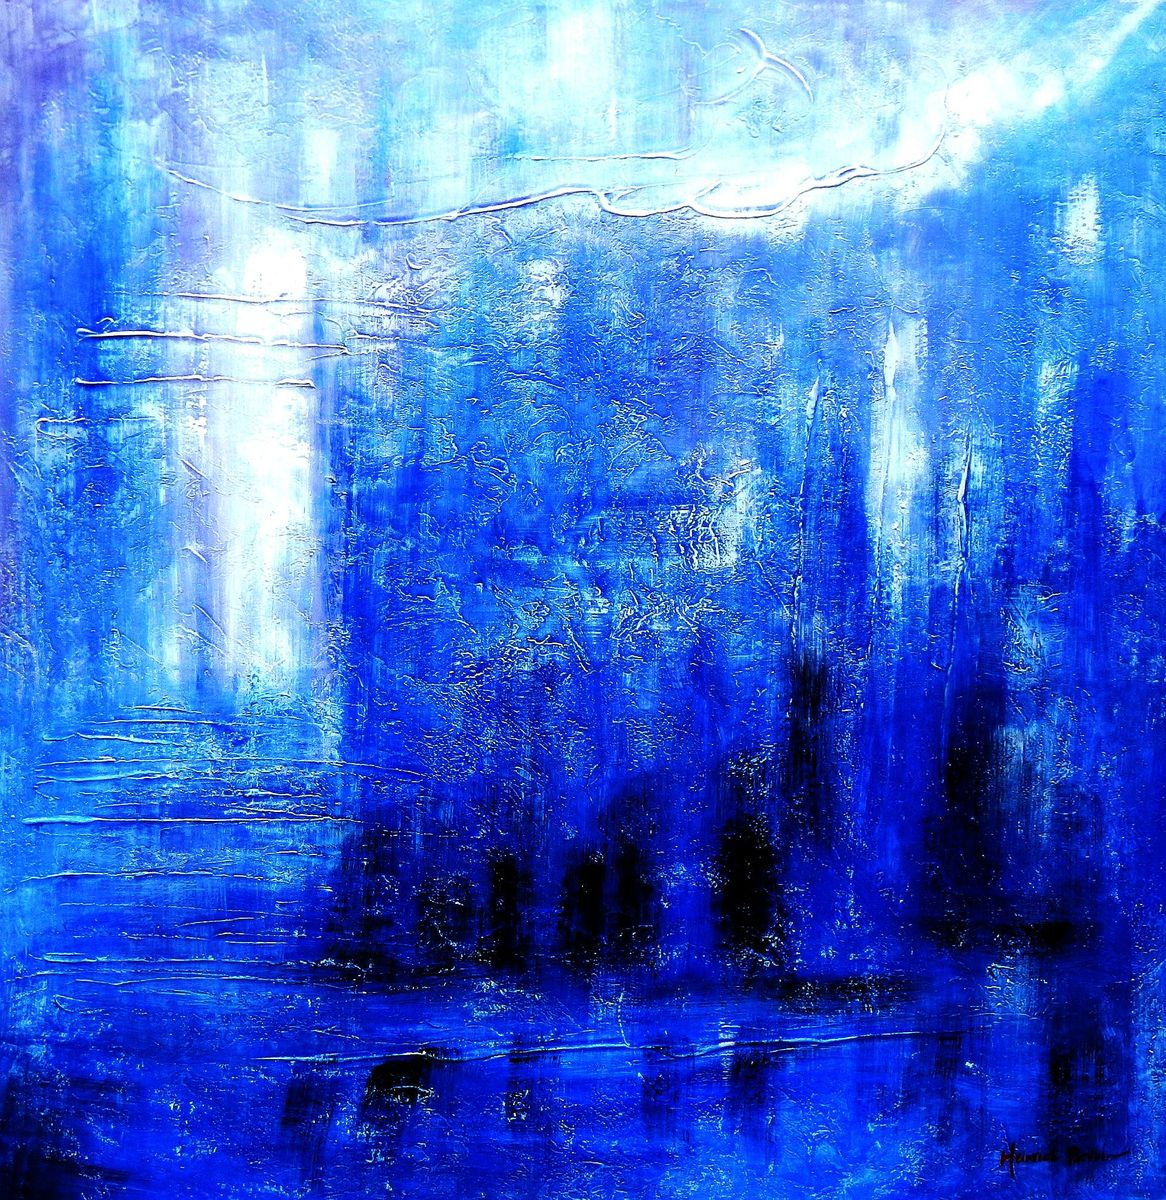 Abstract - Winter Olympics m92992 120x120cm abstraktes Gemälde